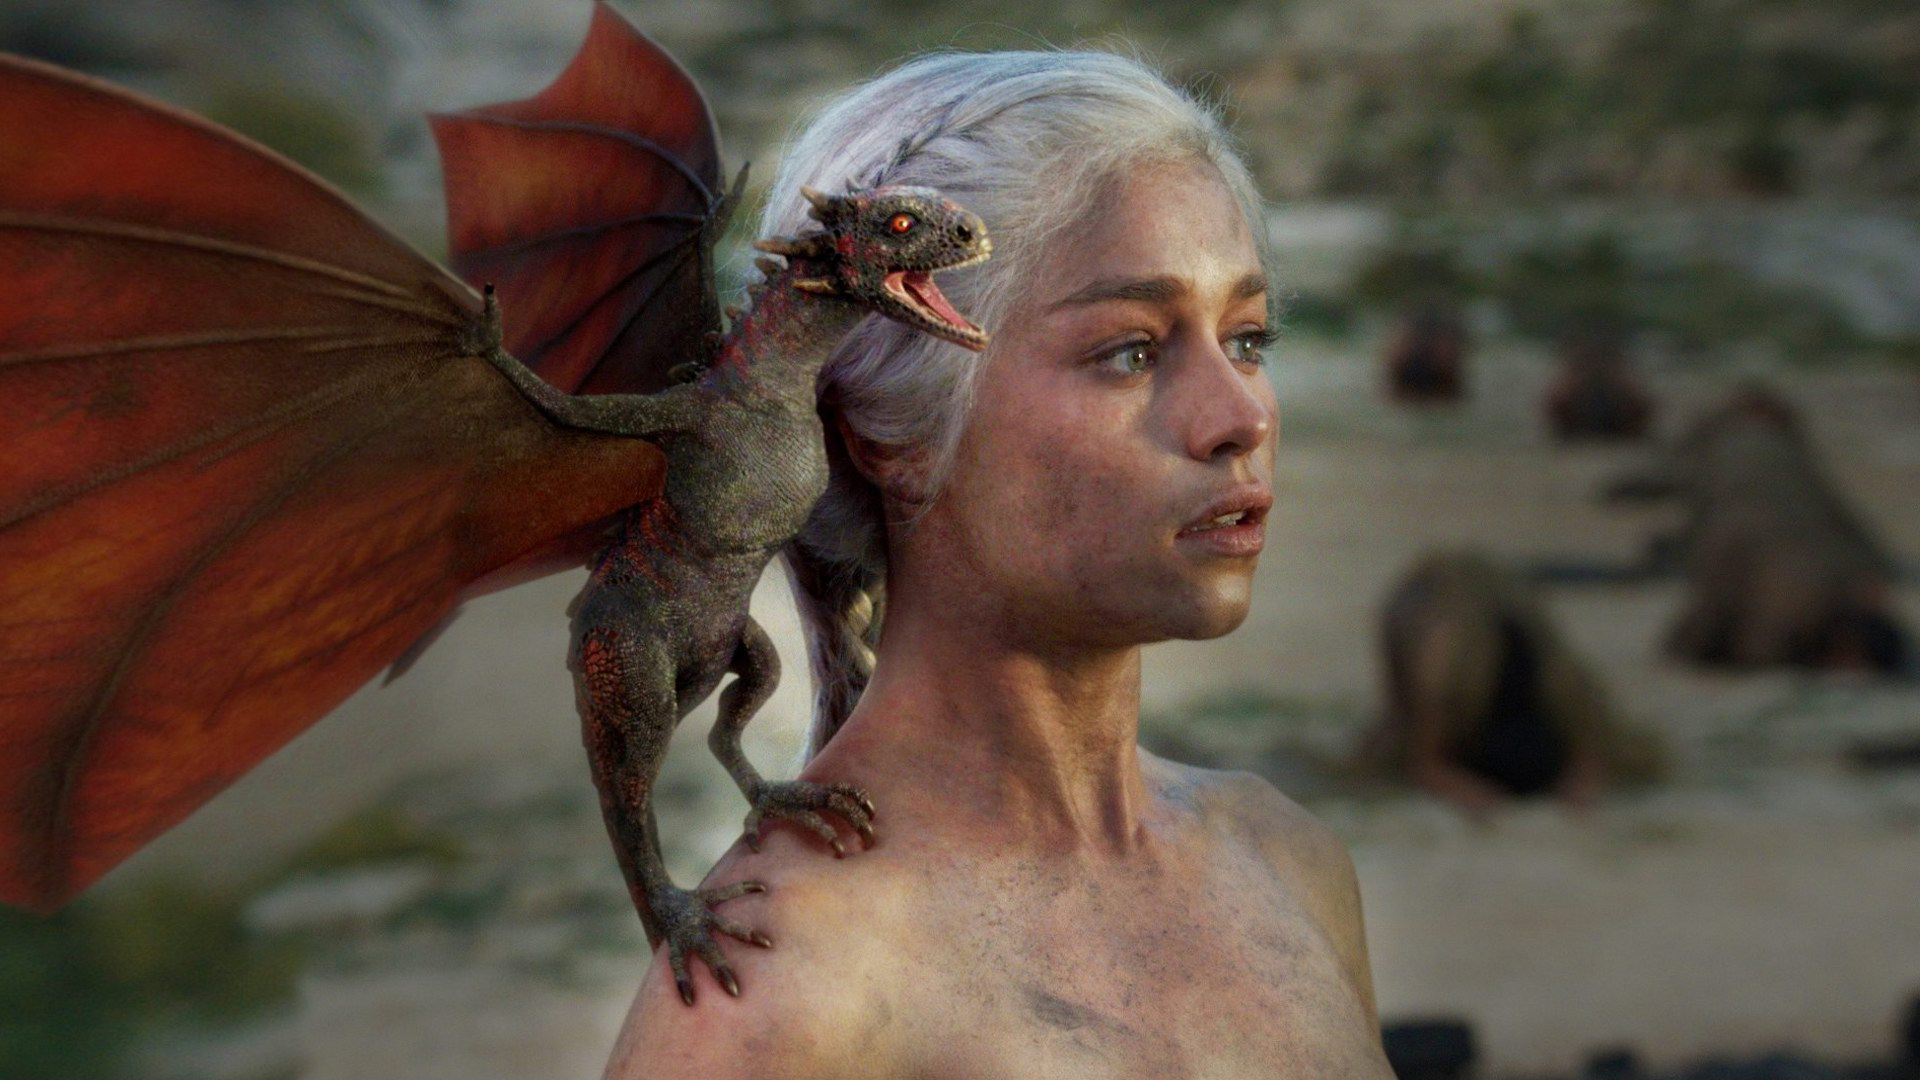 https://opinionessoftheworld.files.wordpress.com/2013/04/game-of-thrones-daenerys-dragon.jpg